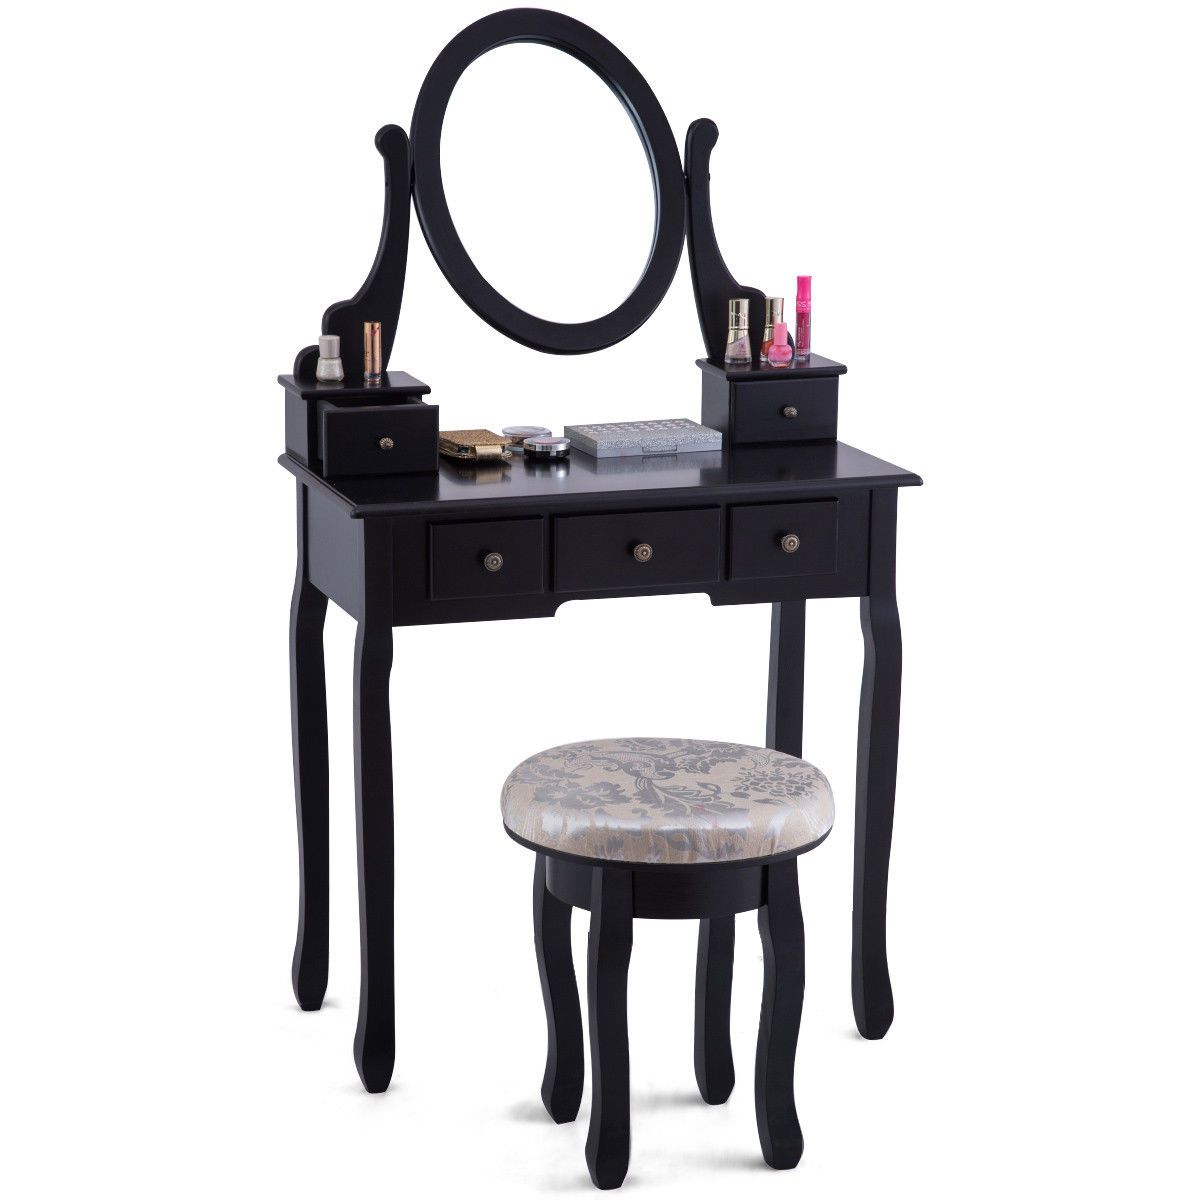 Giantex Vanity Table Set Modern Bedroom Makeup Mirror Dressing Table Cushioned Stool with 5 Drawers Wood Dressers HW56028 giantex wood makeup dressing table stool set jewelry desk drawer mirror black home furniture hw52951bk